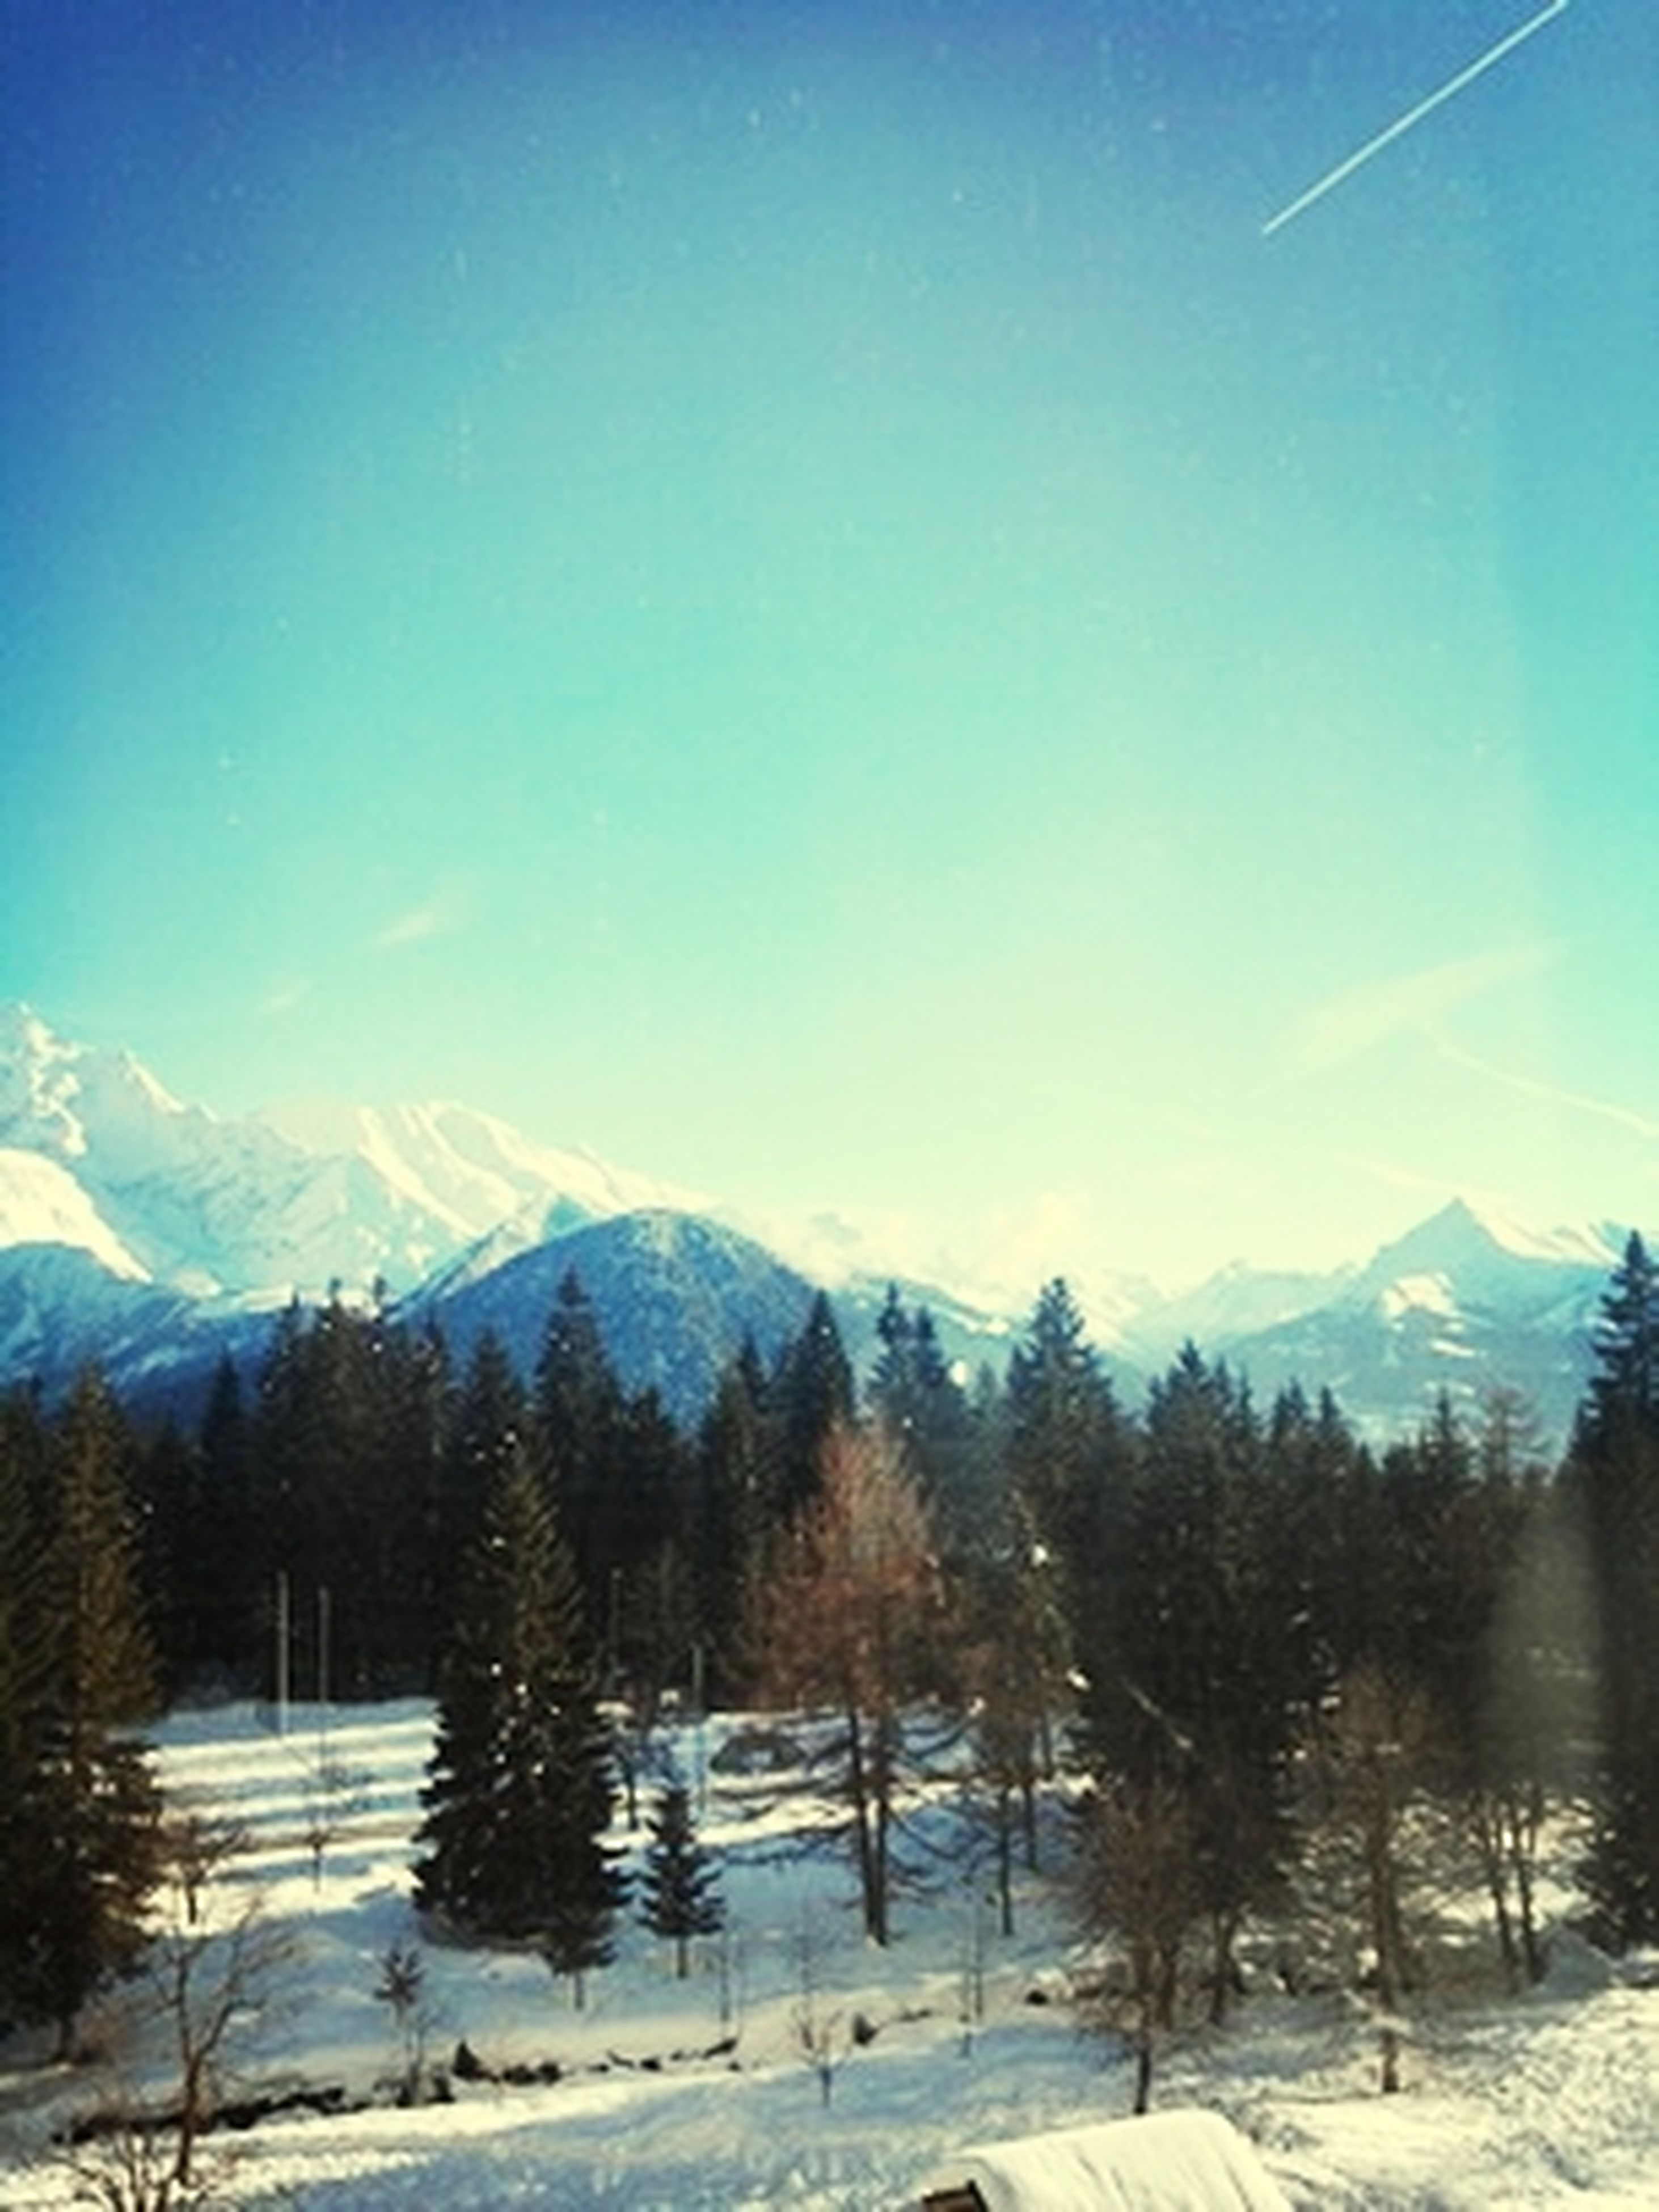 snow, winter, cold temperature, season, mountain, tranquil scene, tranquility, landscape, weather, scenics, beauty in nature, clear sky, snowcapped mountain, covering, mountain range, nature, blue, tree, non-urban scene, frozen